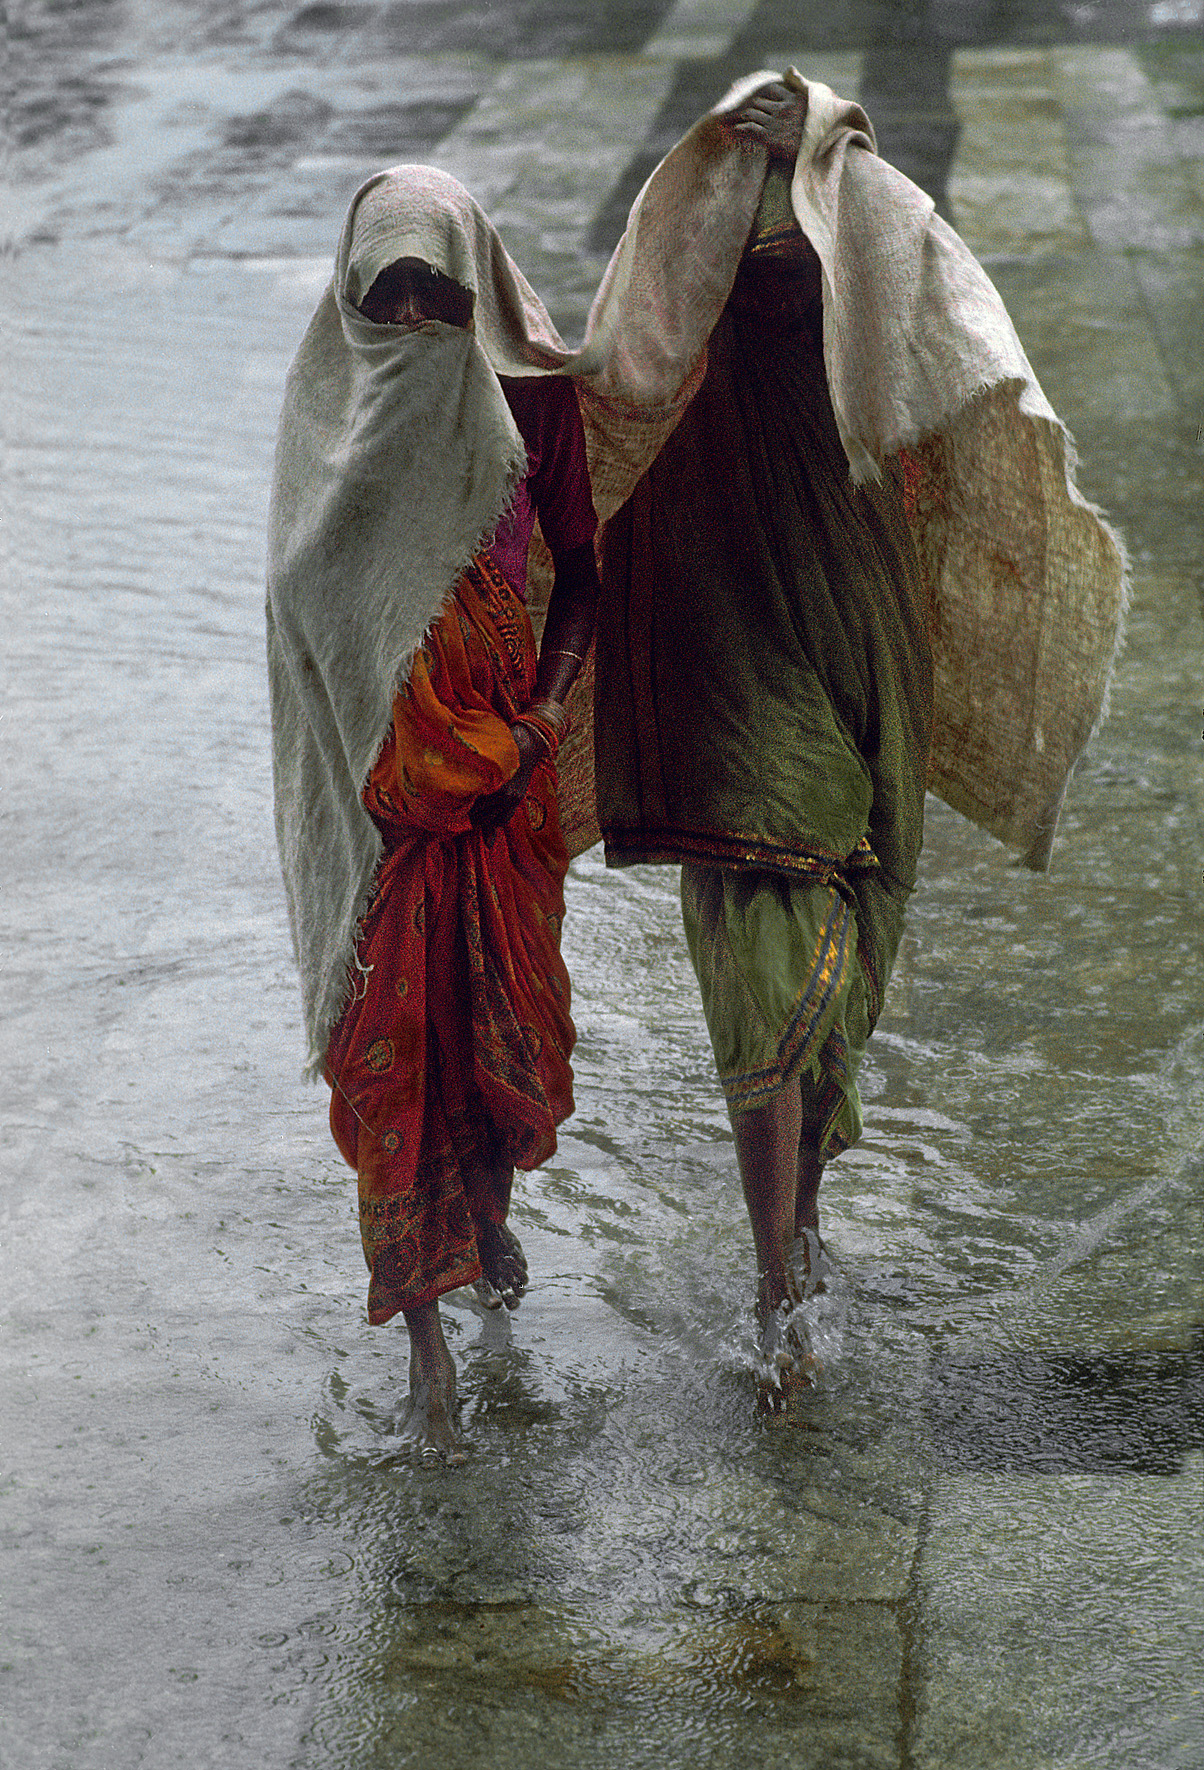 © Frank Horvat – Two women in the monsoon rain Madras, India, 1975, Courtesy KLV Art Projects